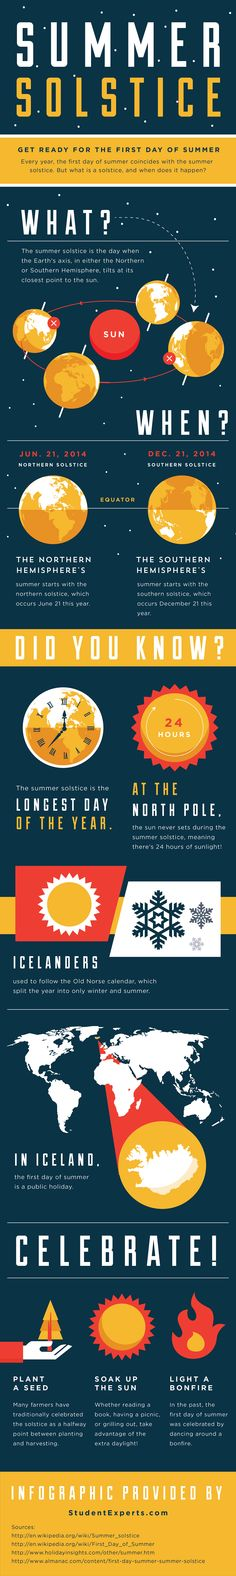 The summer solstice marks the first day of summer. Celebrate this event with ideas from this infographic!